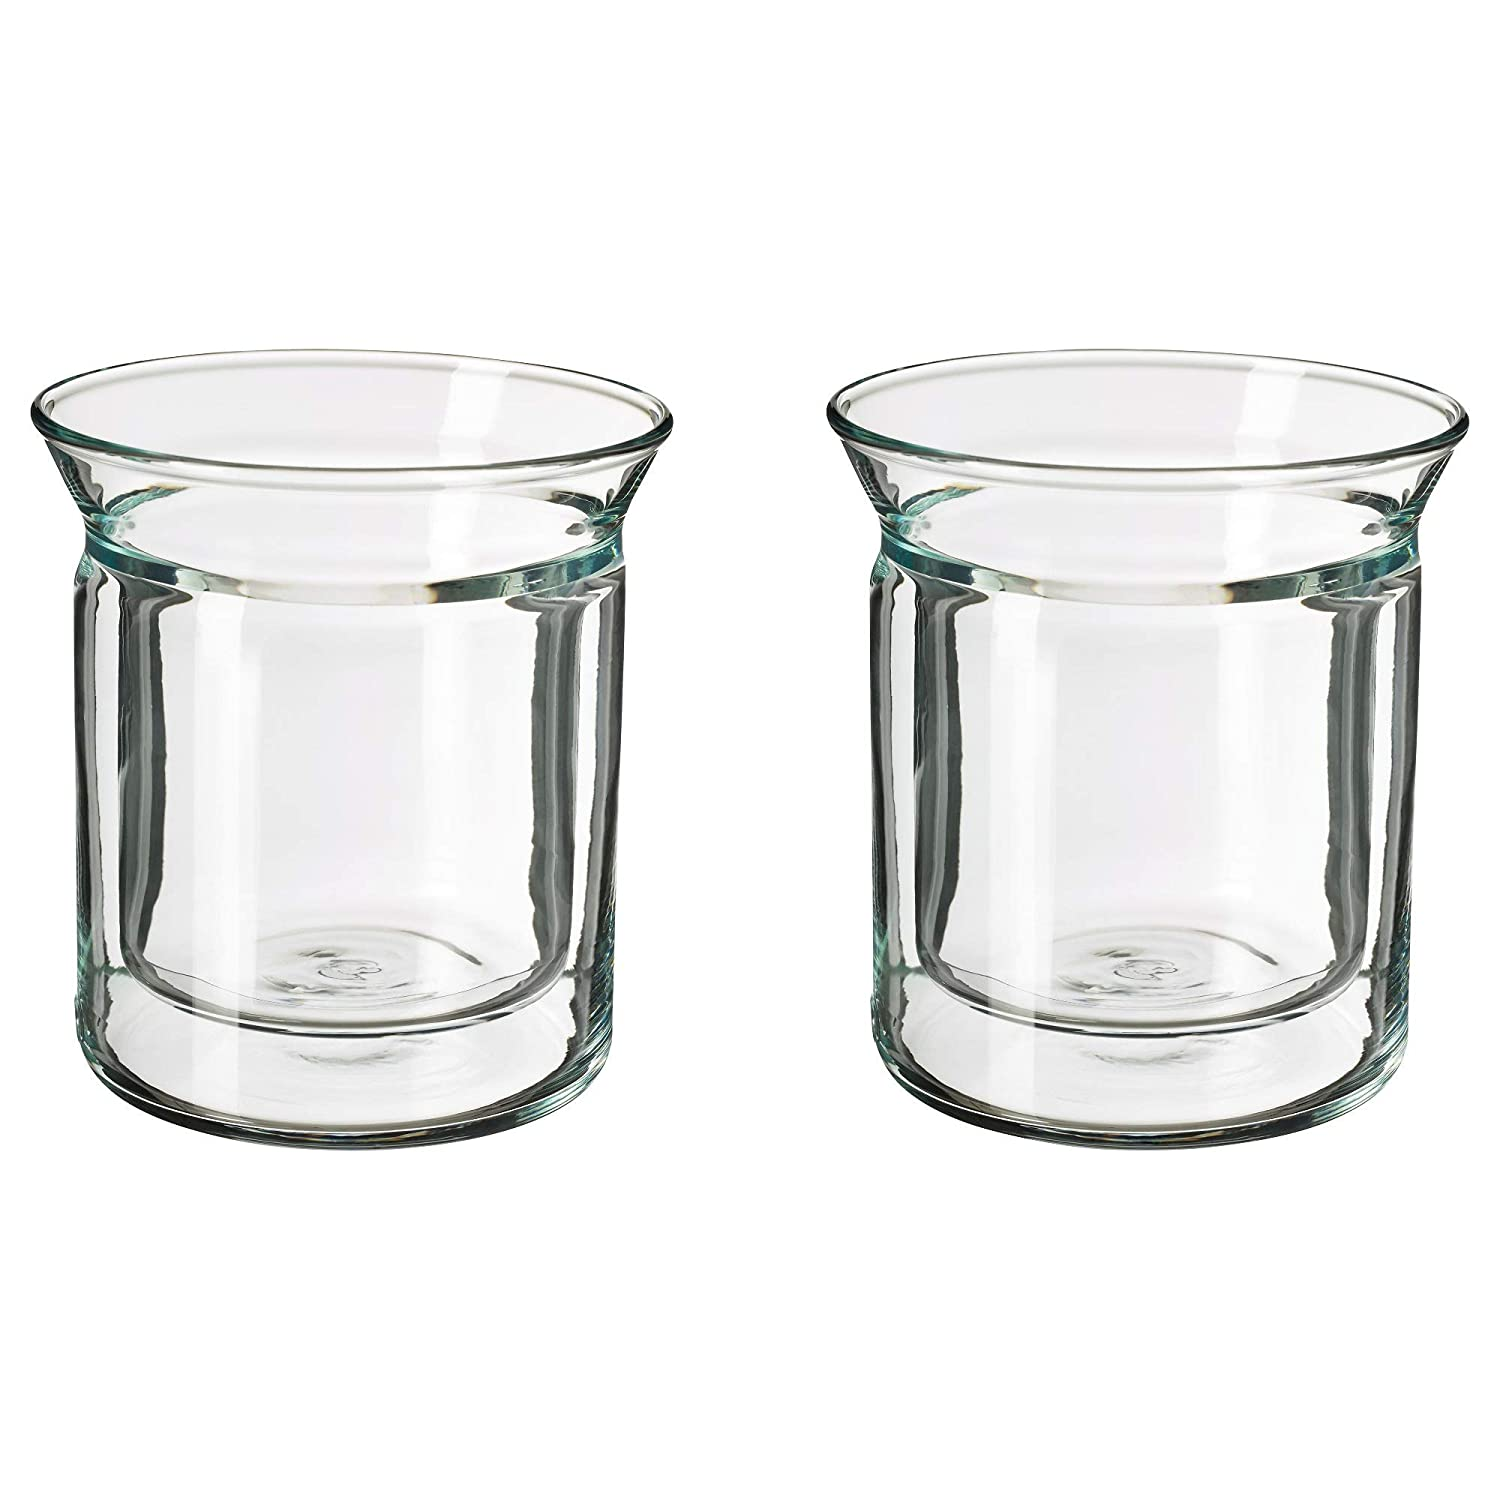 Amazon.com: Ikea 903.589.81 Avrundad - Vaso de doble cara ...